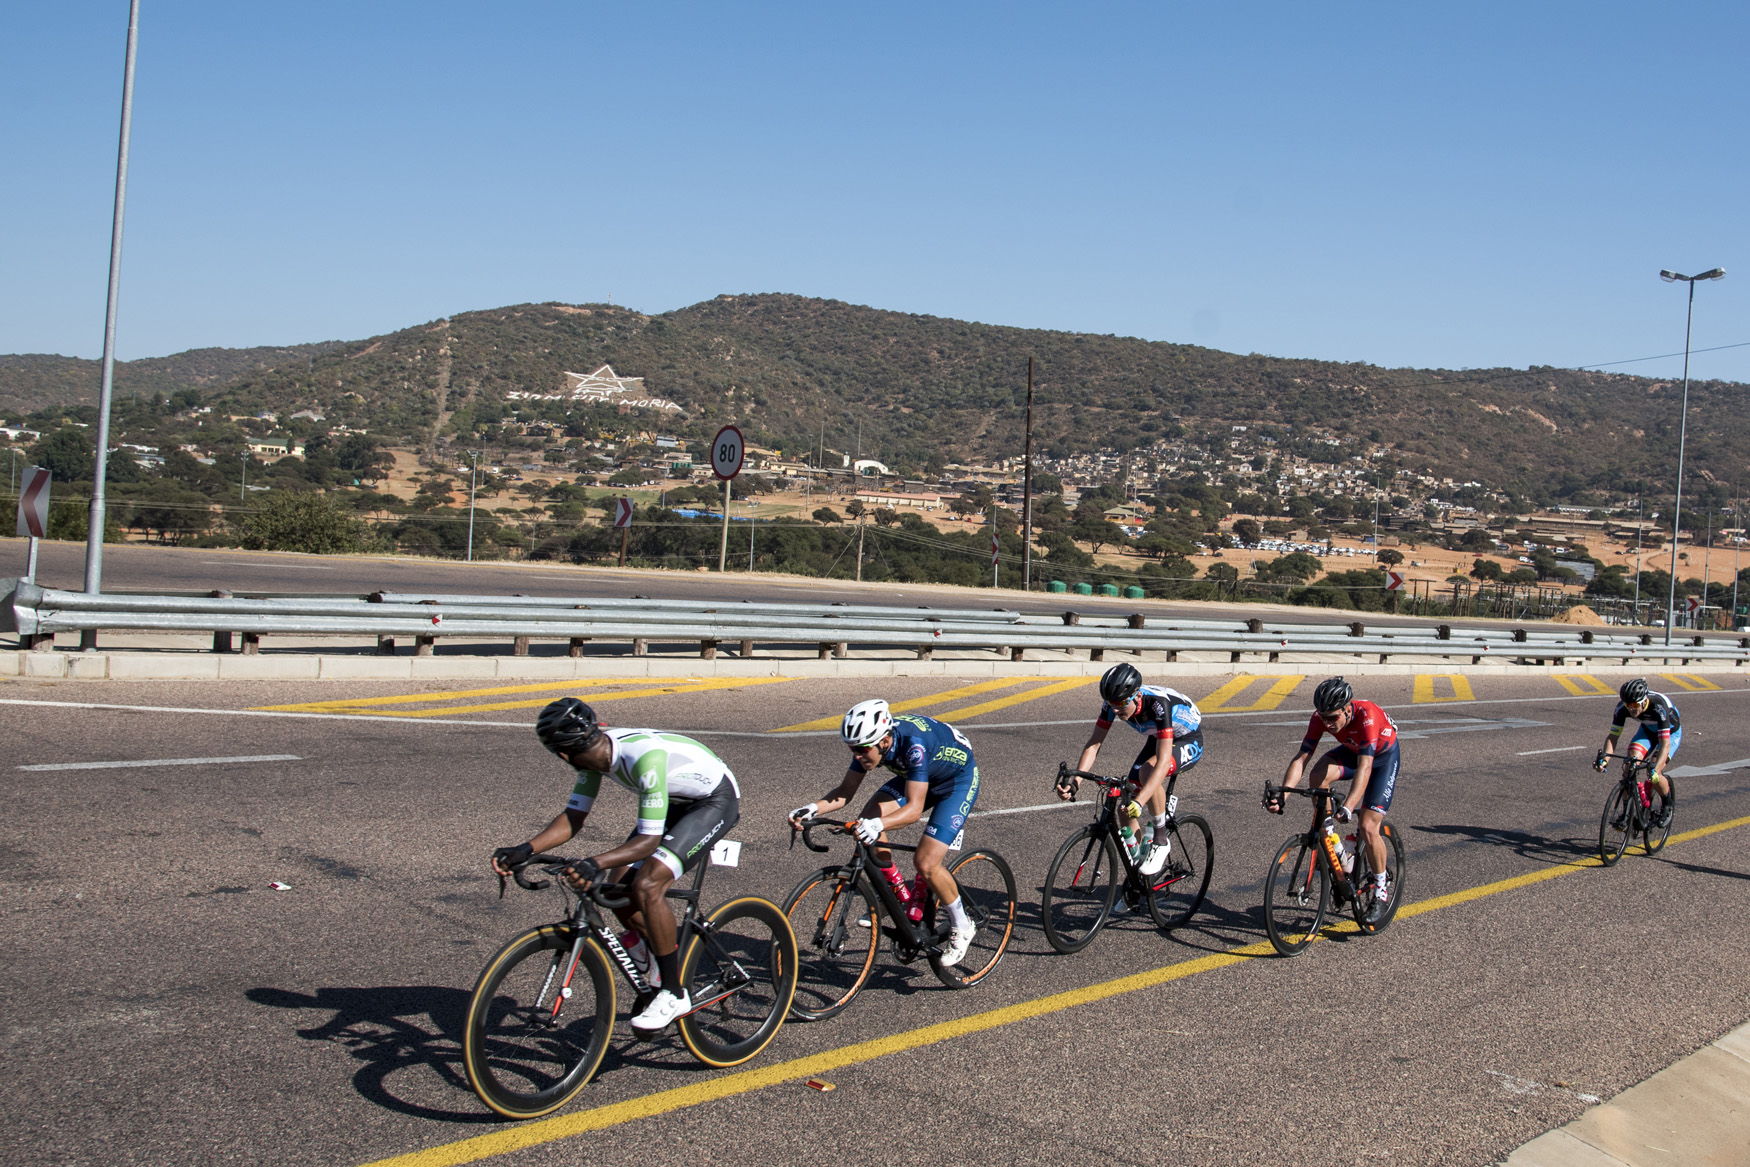 The lead group of riders pass Zionist City Moria from Polokwane to Tzaneen on Stage 2 of the 2019 Tour de Limpopo (UCI 2.2) from 14-18 May © Tour de Limpopo/Andrew Mc Fadden